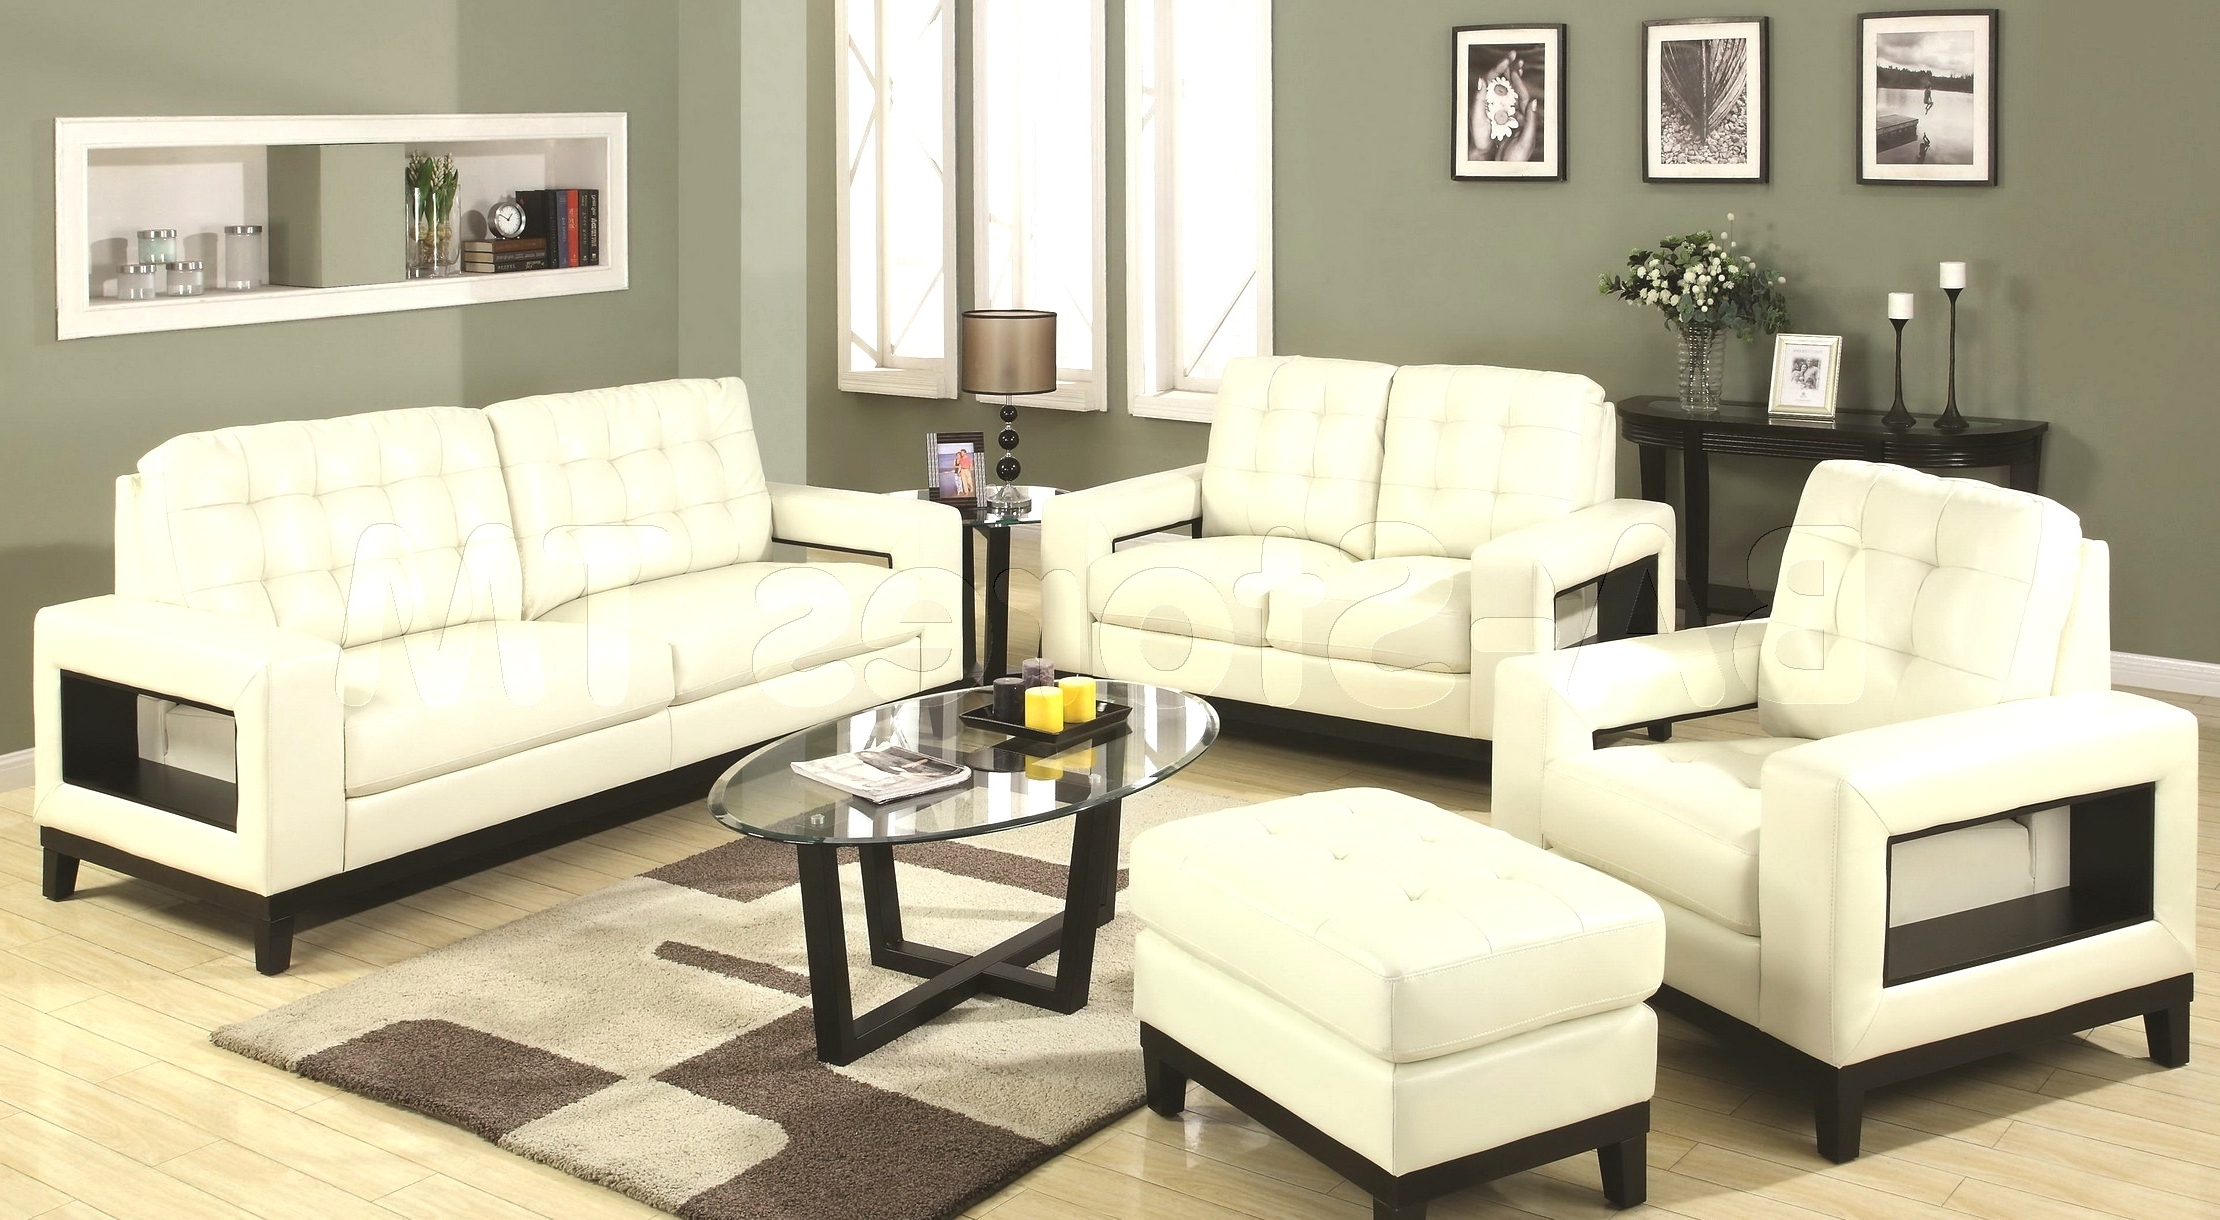 Famous Elegant Sofas Sets 79 Sofas And Couches Ideas With Sofas Sets Regarding Elegant Sofas And Chairs (View 11 of 20)